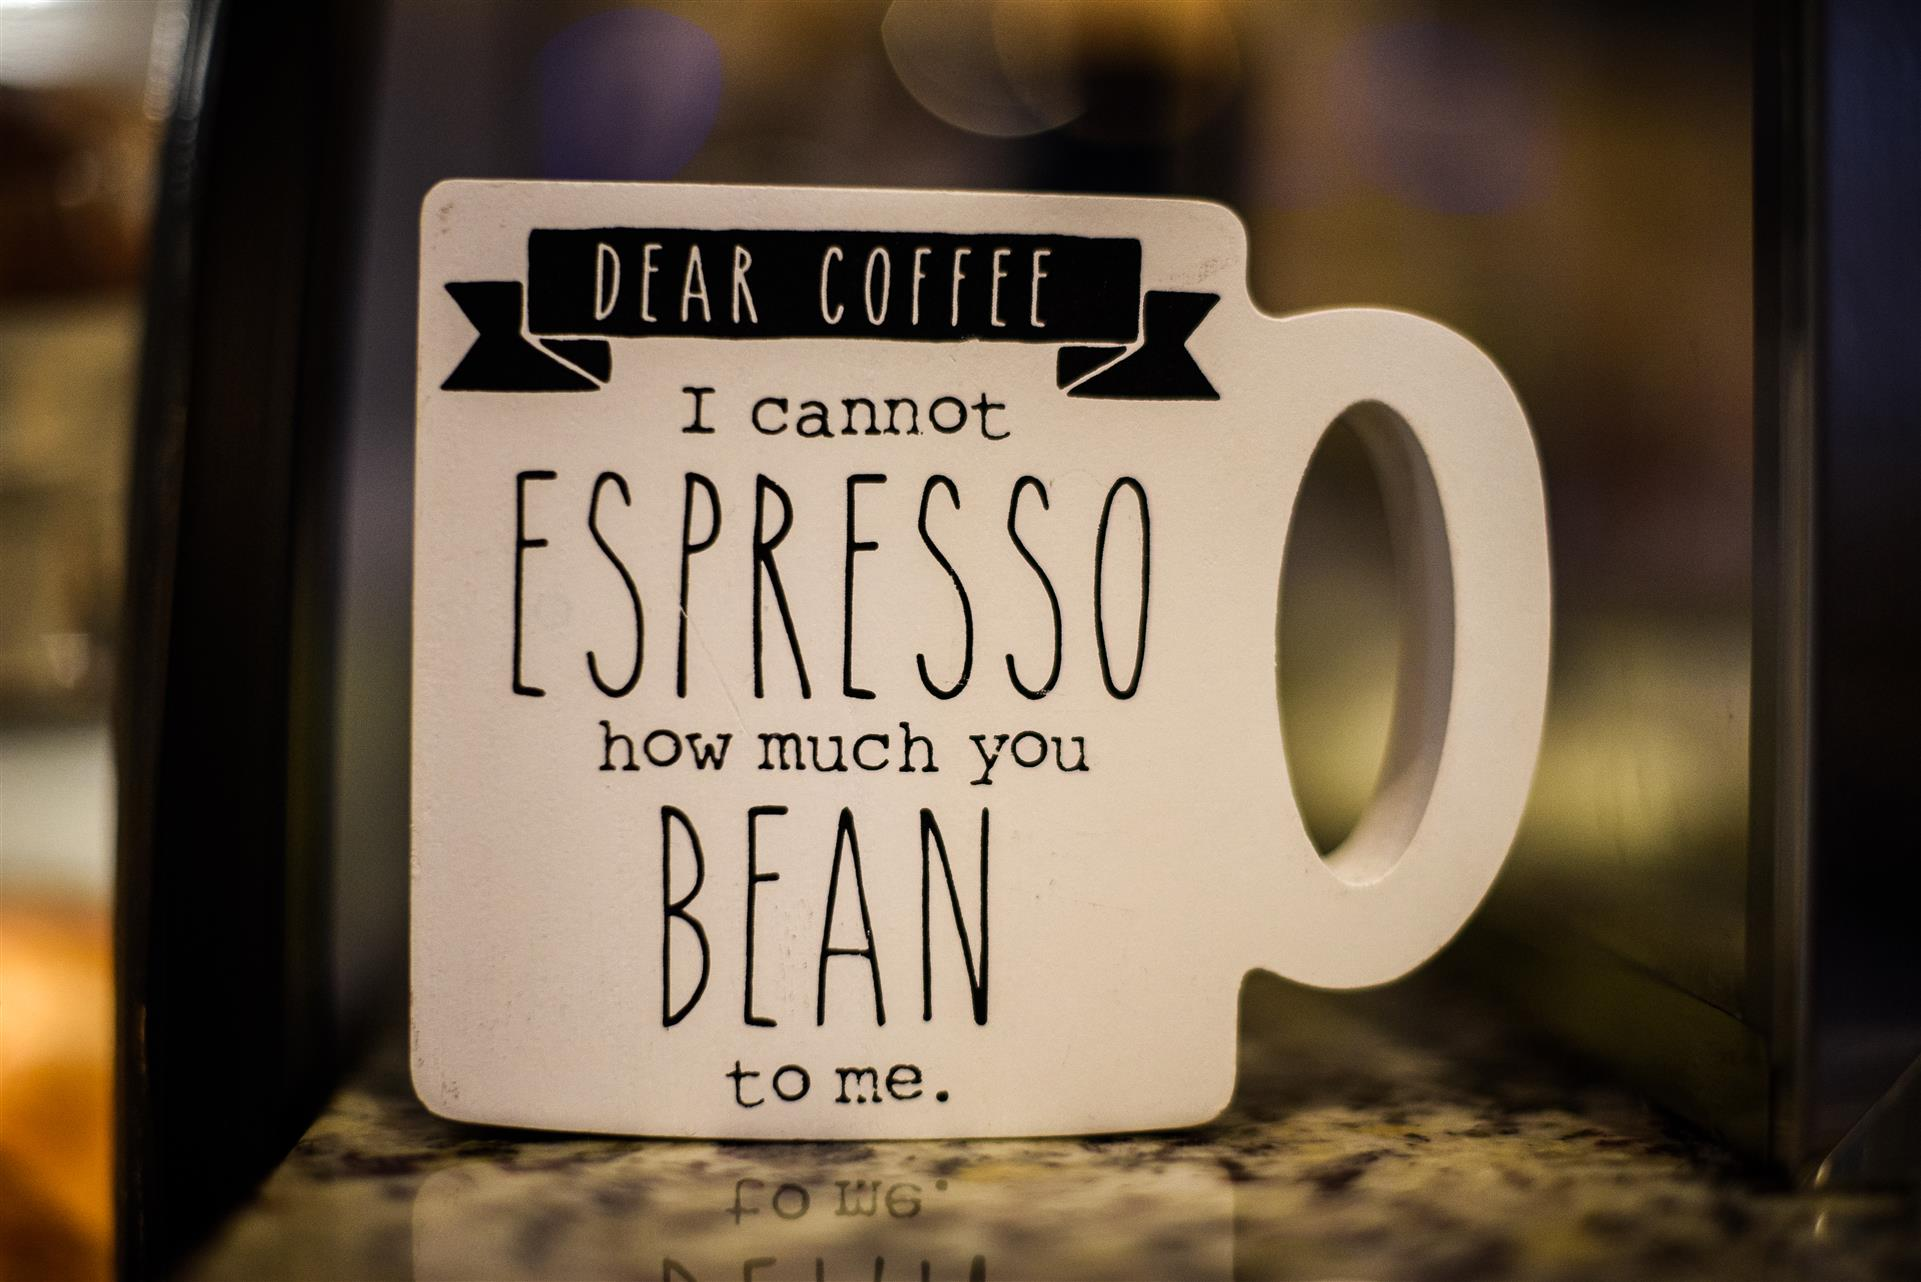 Decoration that says Dear Coffee I canno ESPRESSO how much you BEAN to me.